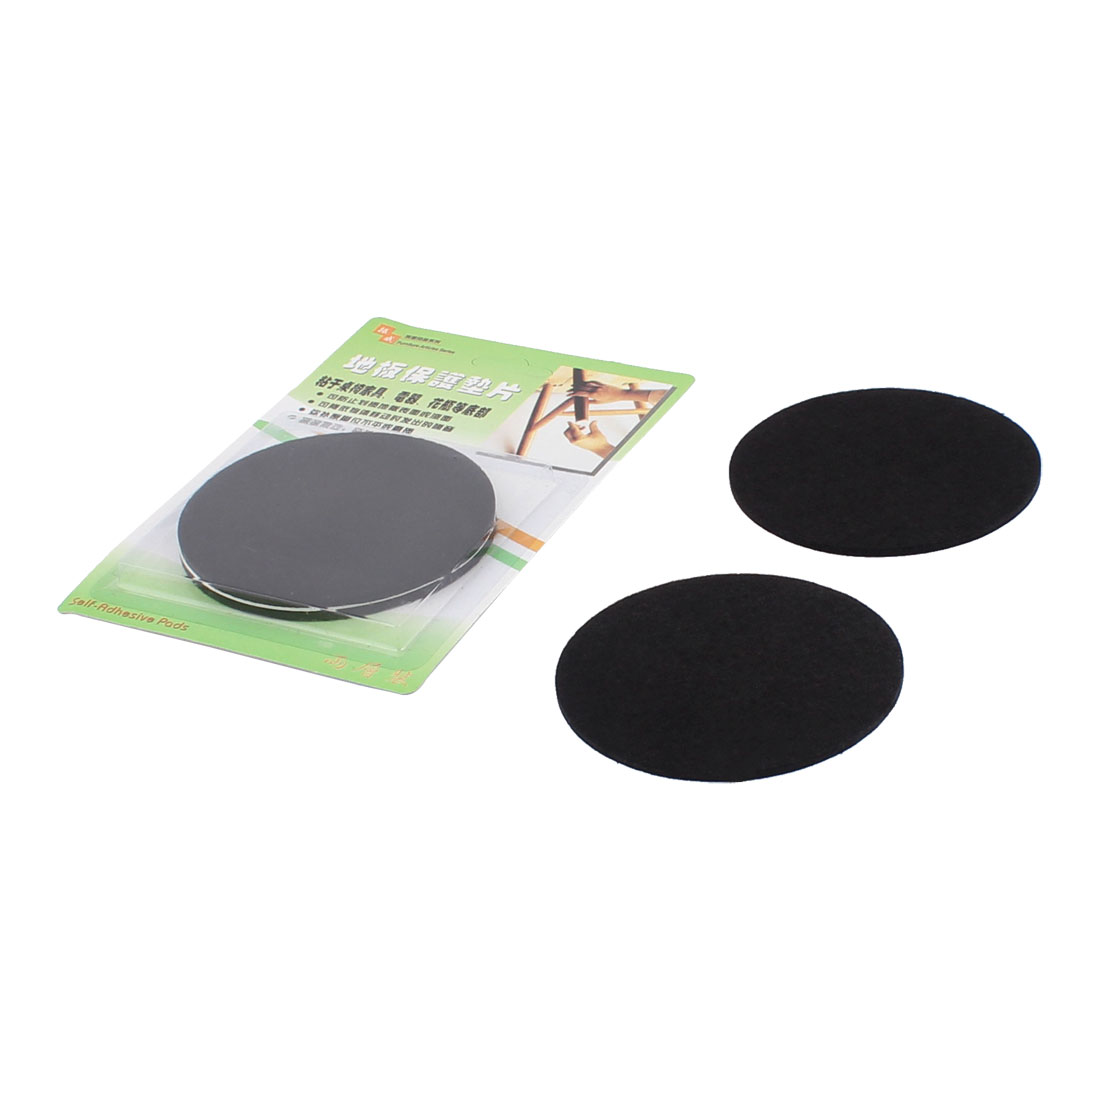 Cabinet Desk Legs Self Adhesive Floor Protection Furniture Felt Pads Mats Black 85mm Diameter 4pcs